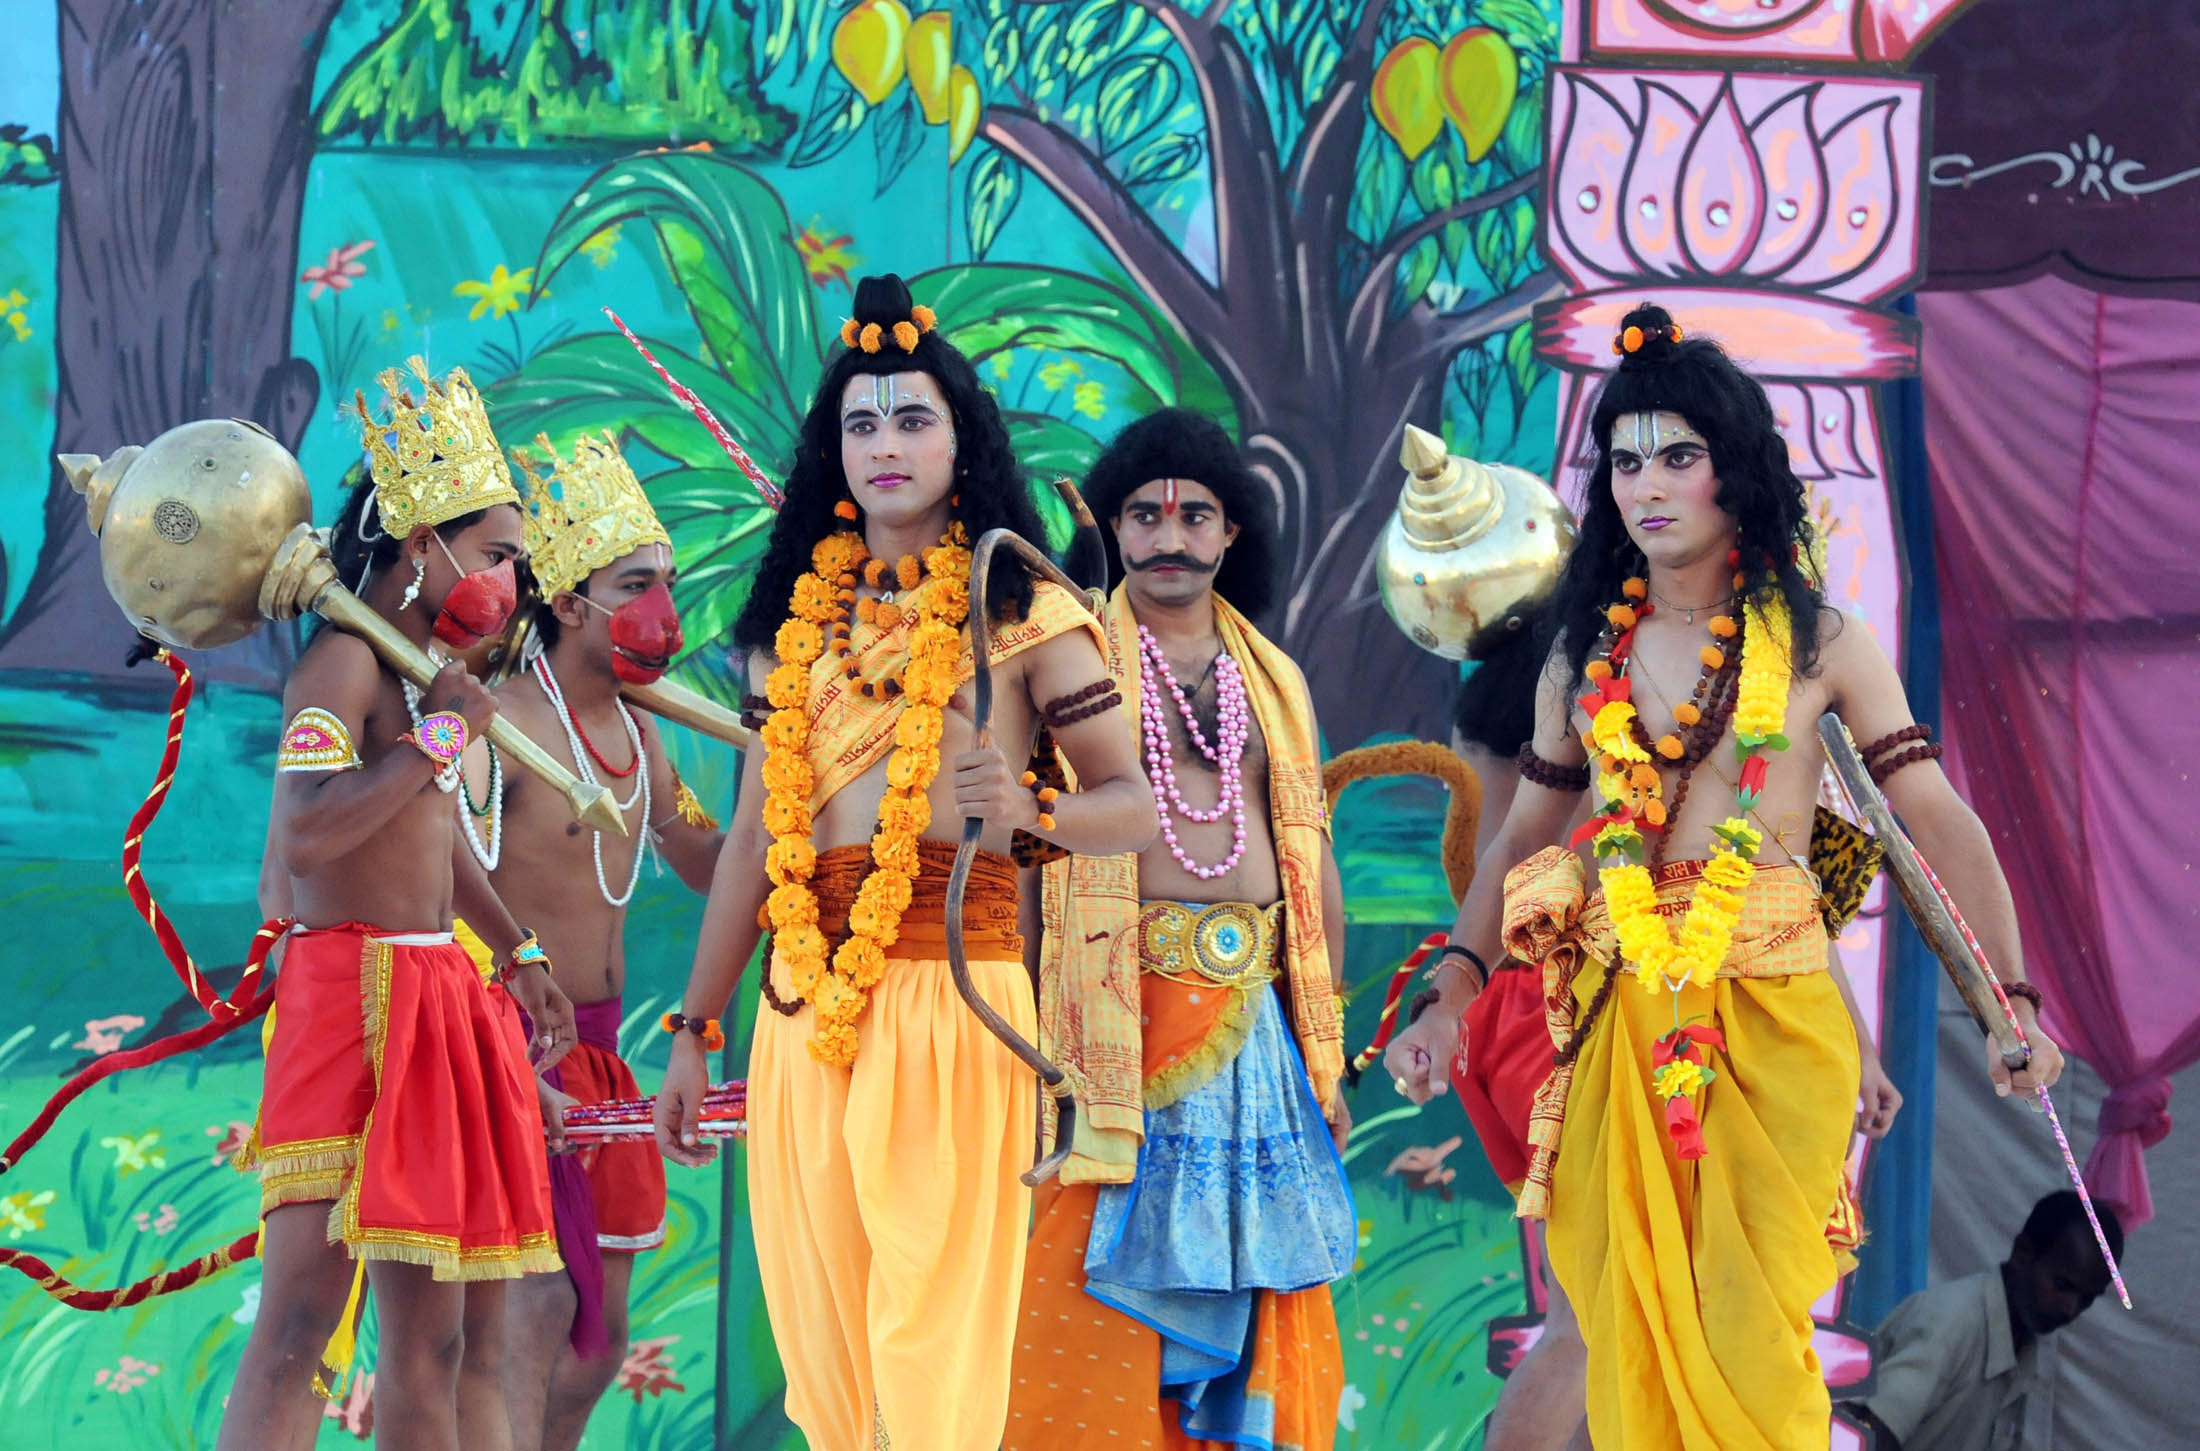 There is also staging of Ram Lila or the dramatic depiction of episodes from the lives of Ram, Sita, and Lakshman during the Dussehra period.